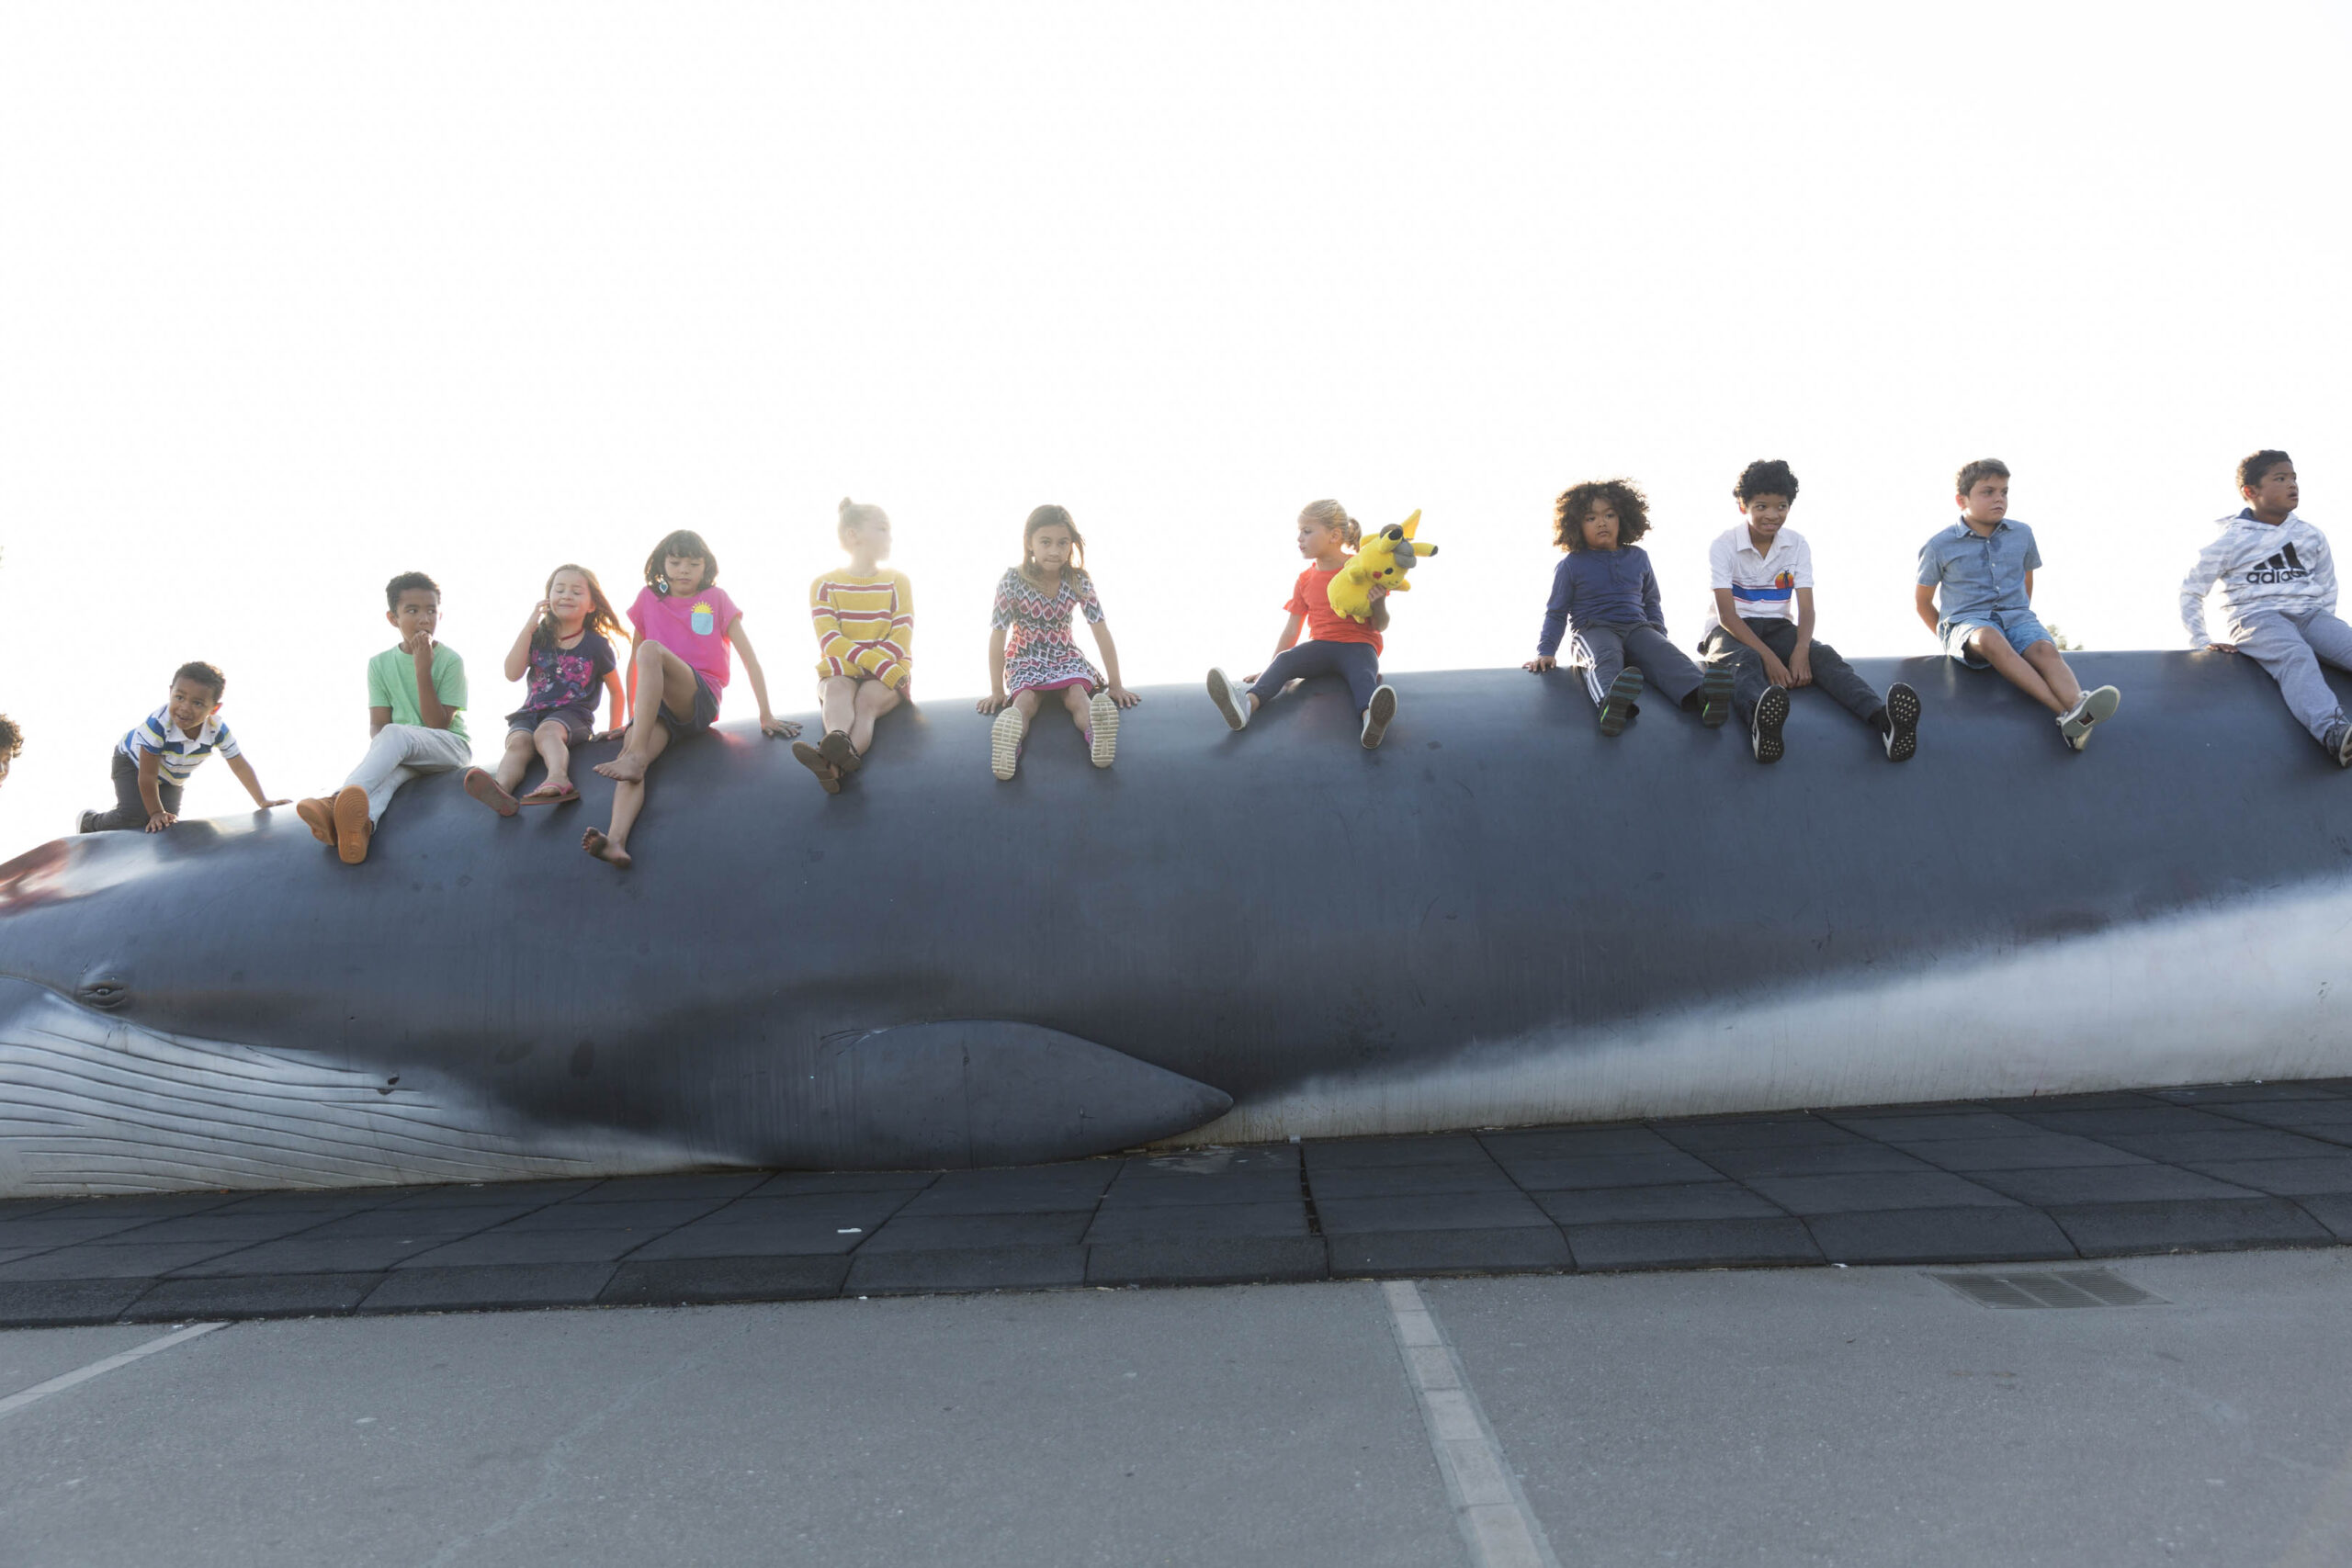 Children sitting on Pheena the Fin Whale on the plaza at The Lawrence